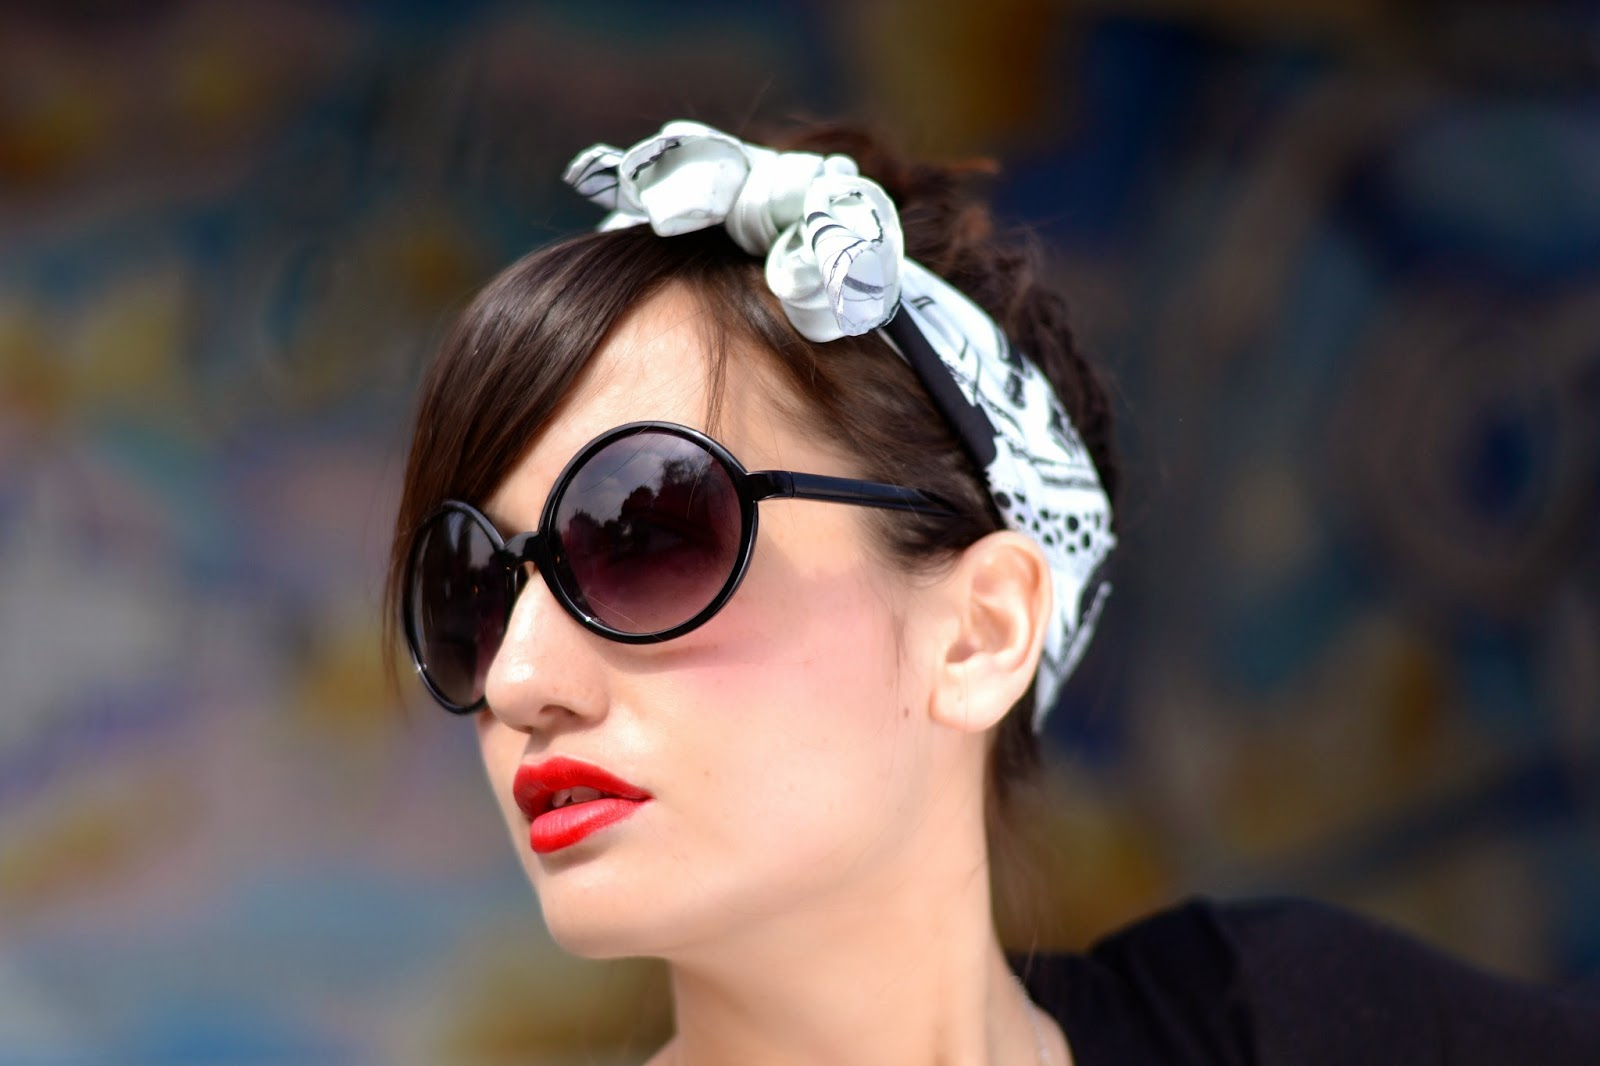 Headscarf and sunglasses